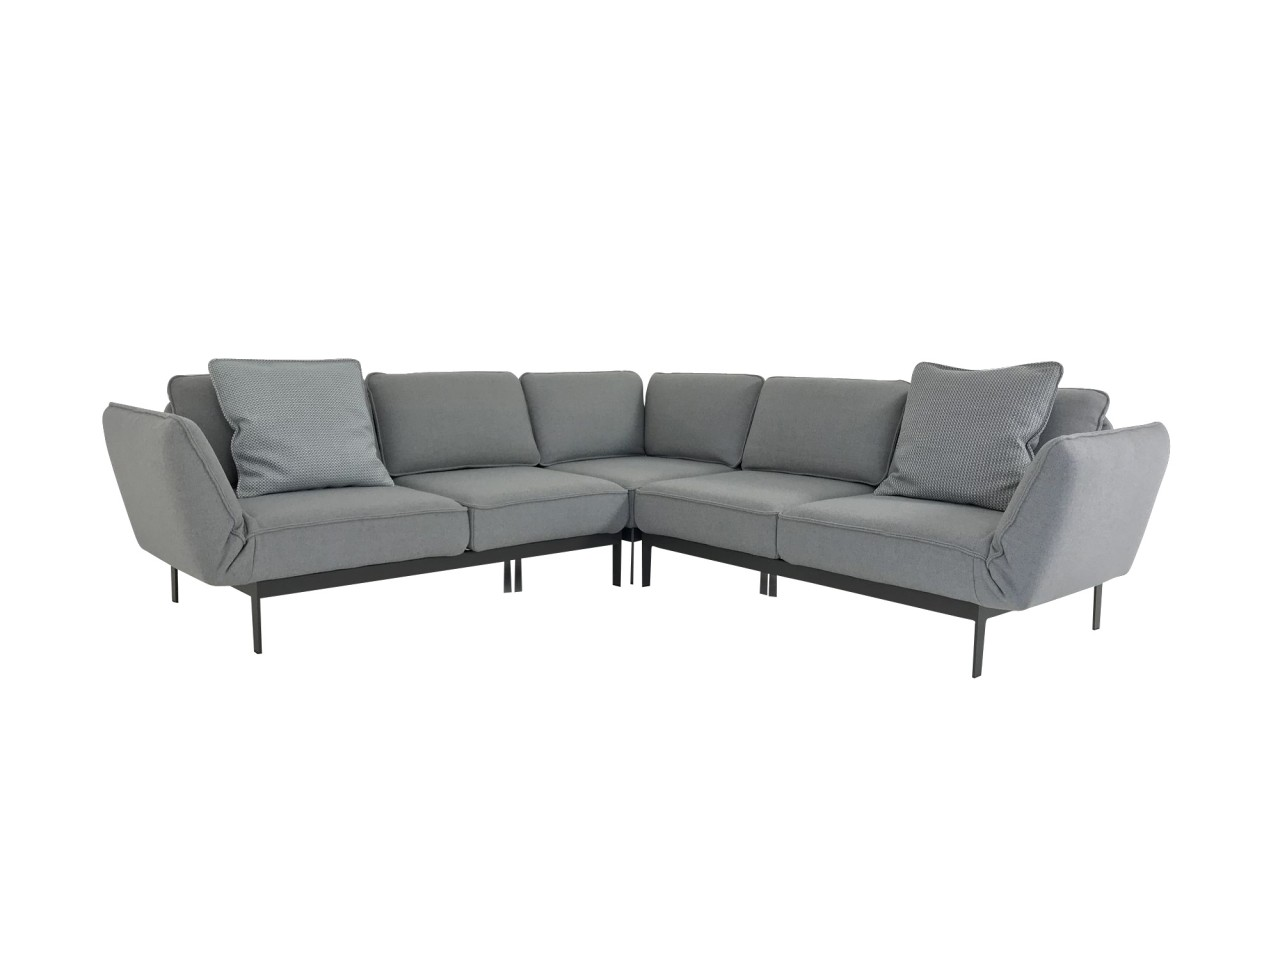 rolf benz mera xl ecksofa im graubeigen schurwollstoff mit. Black Bedroom Furniture Sets. Home Design Ideas